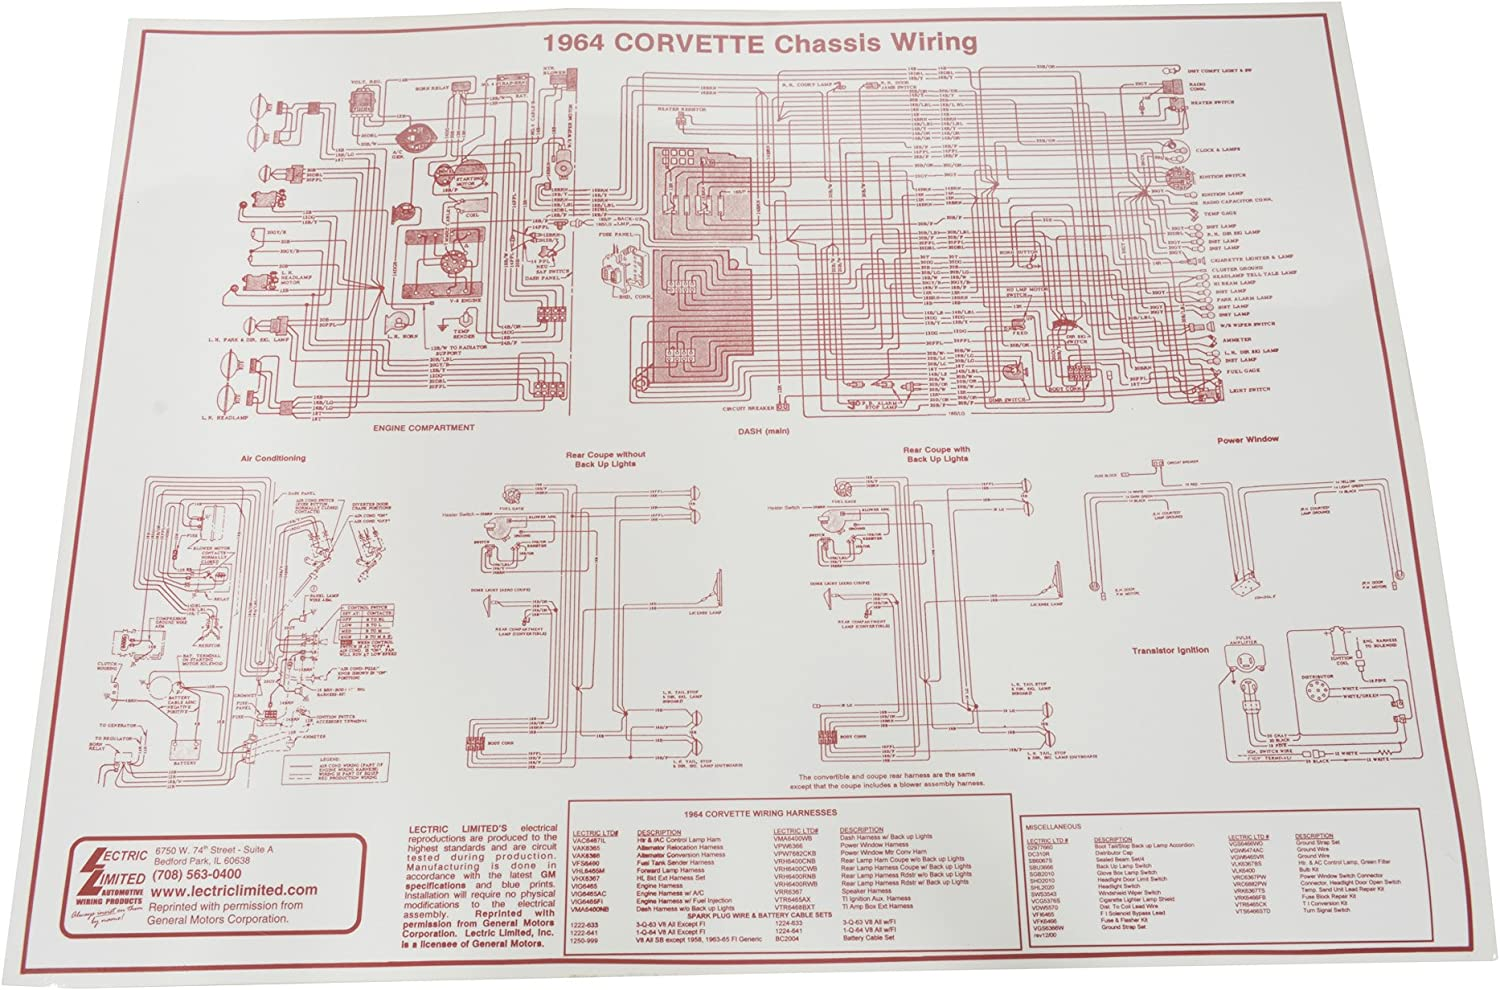 74 corvette wiring diagram amazon com 1964 corvette wiring diagram automotive  1964 corvette wiring diagram